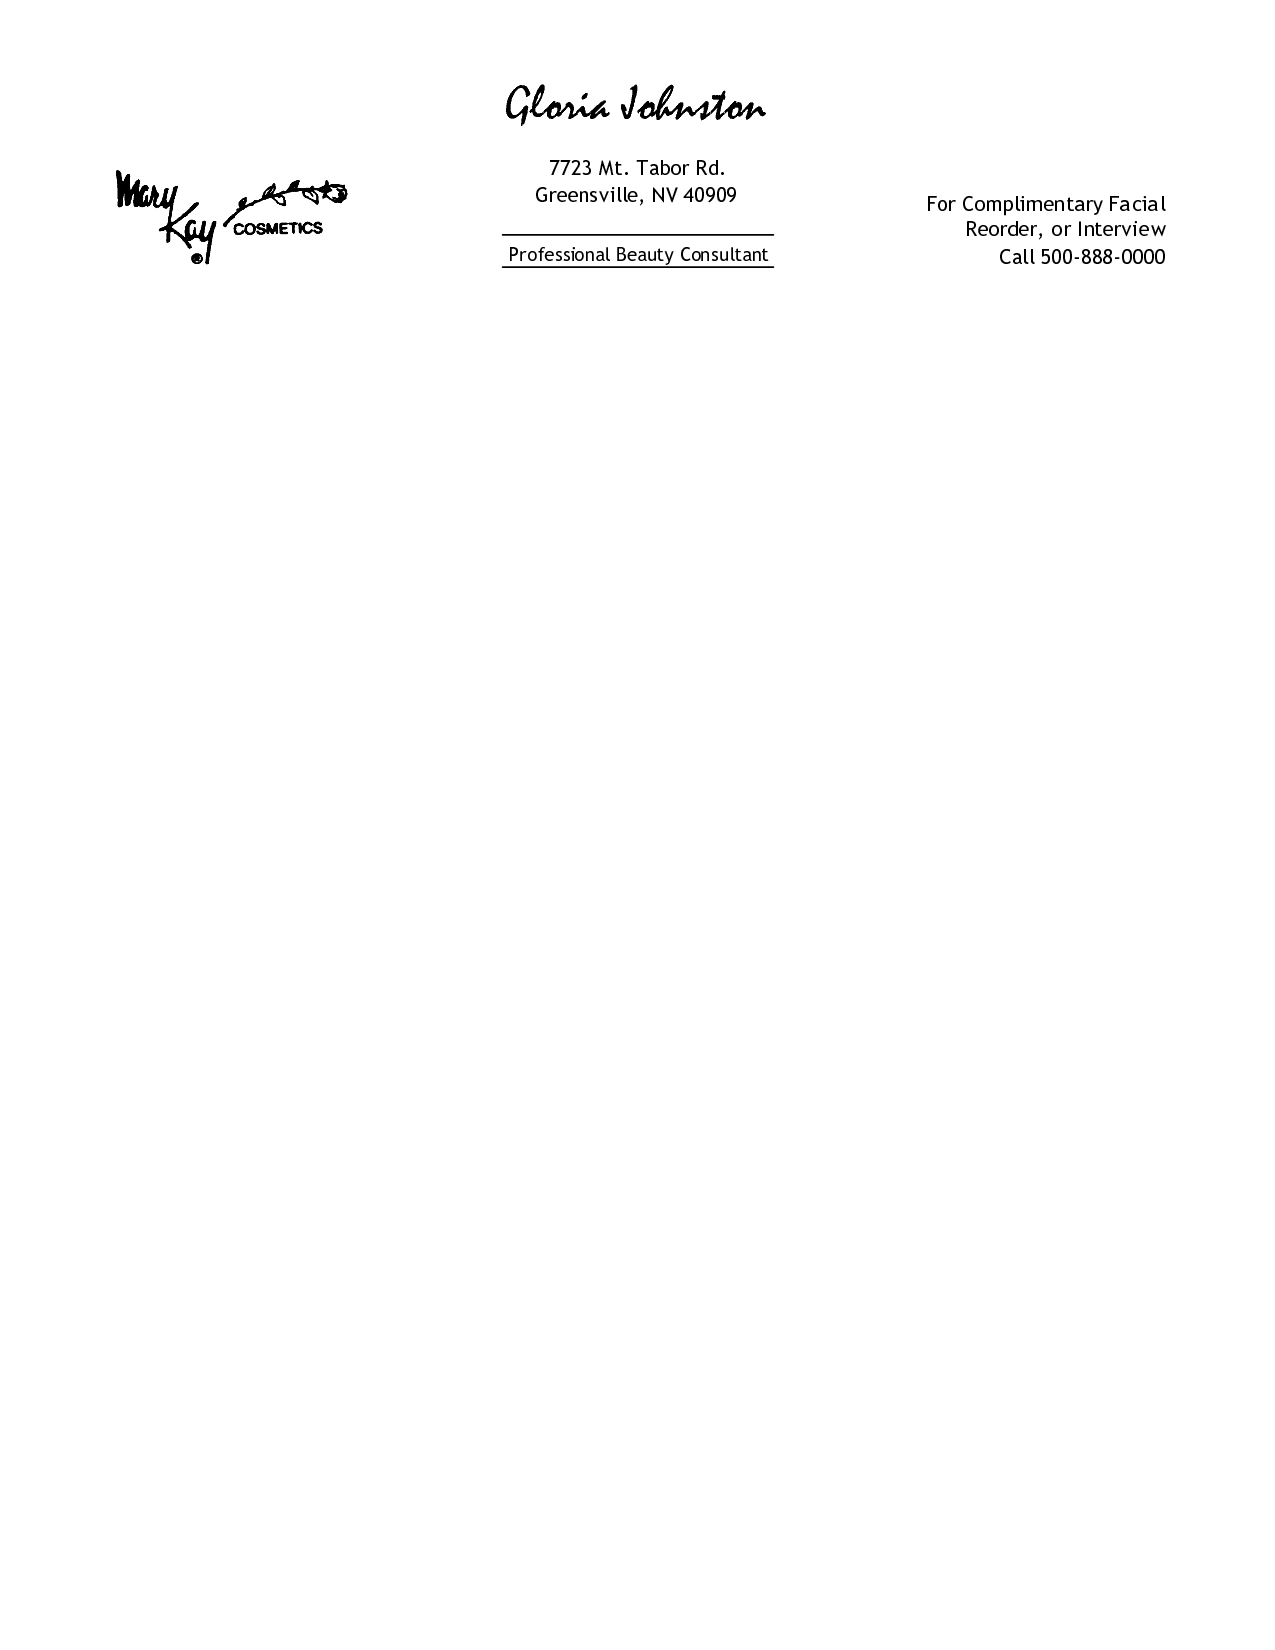 personal letterhead this letterhead would so go with my potential